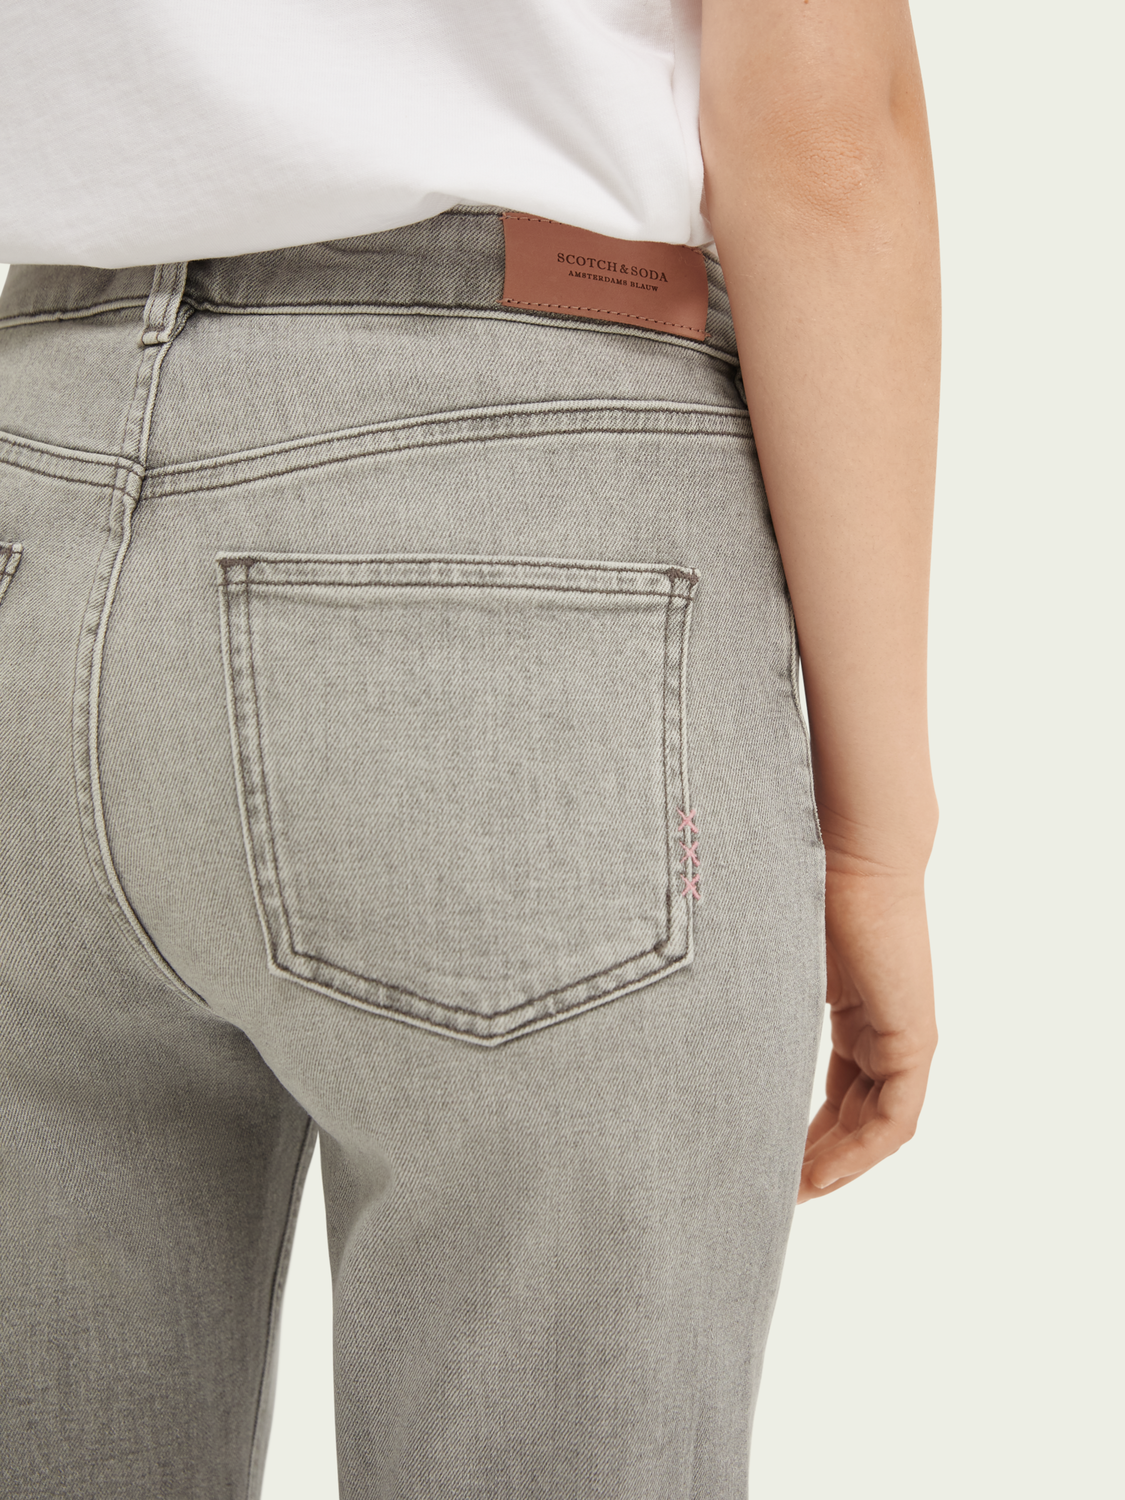 Dames High Five high-rise jeans met smalle pijpen – Fine Tune